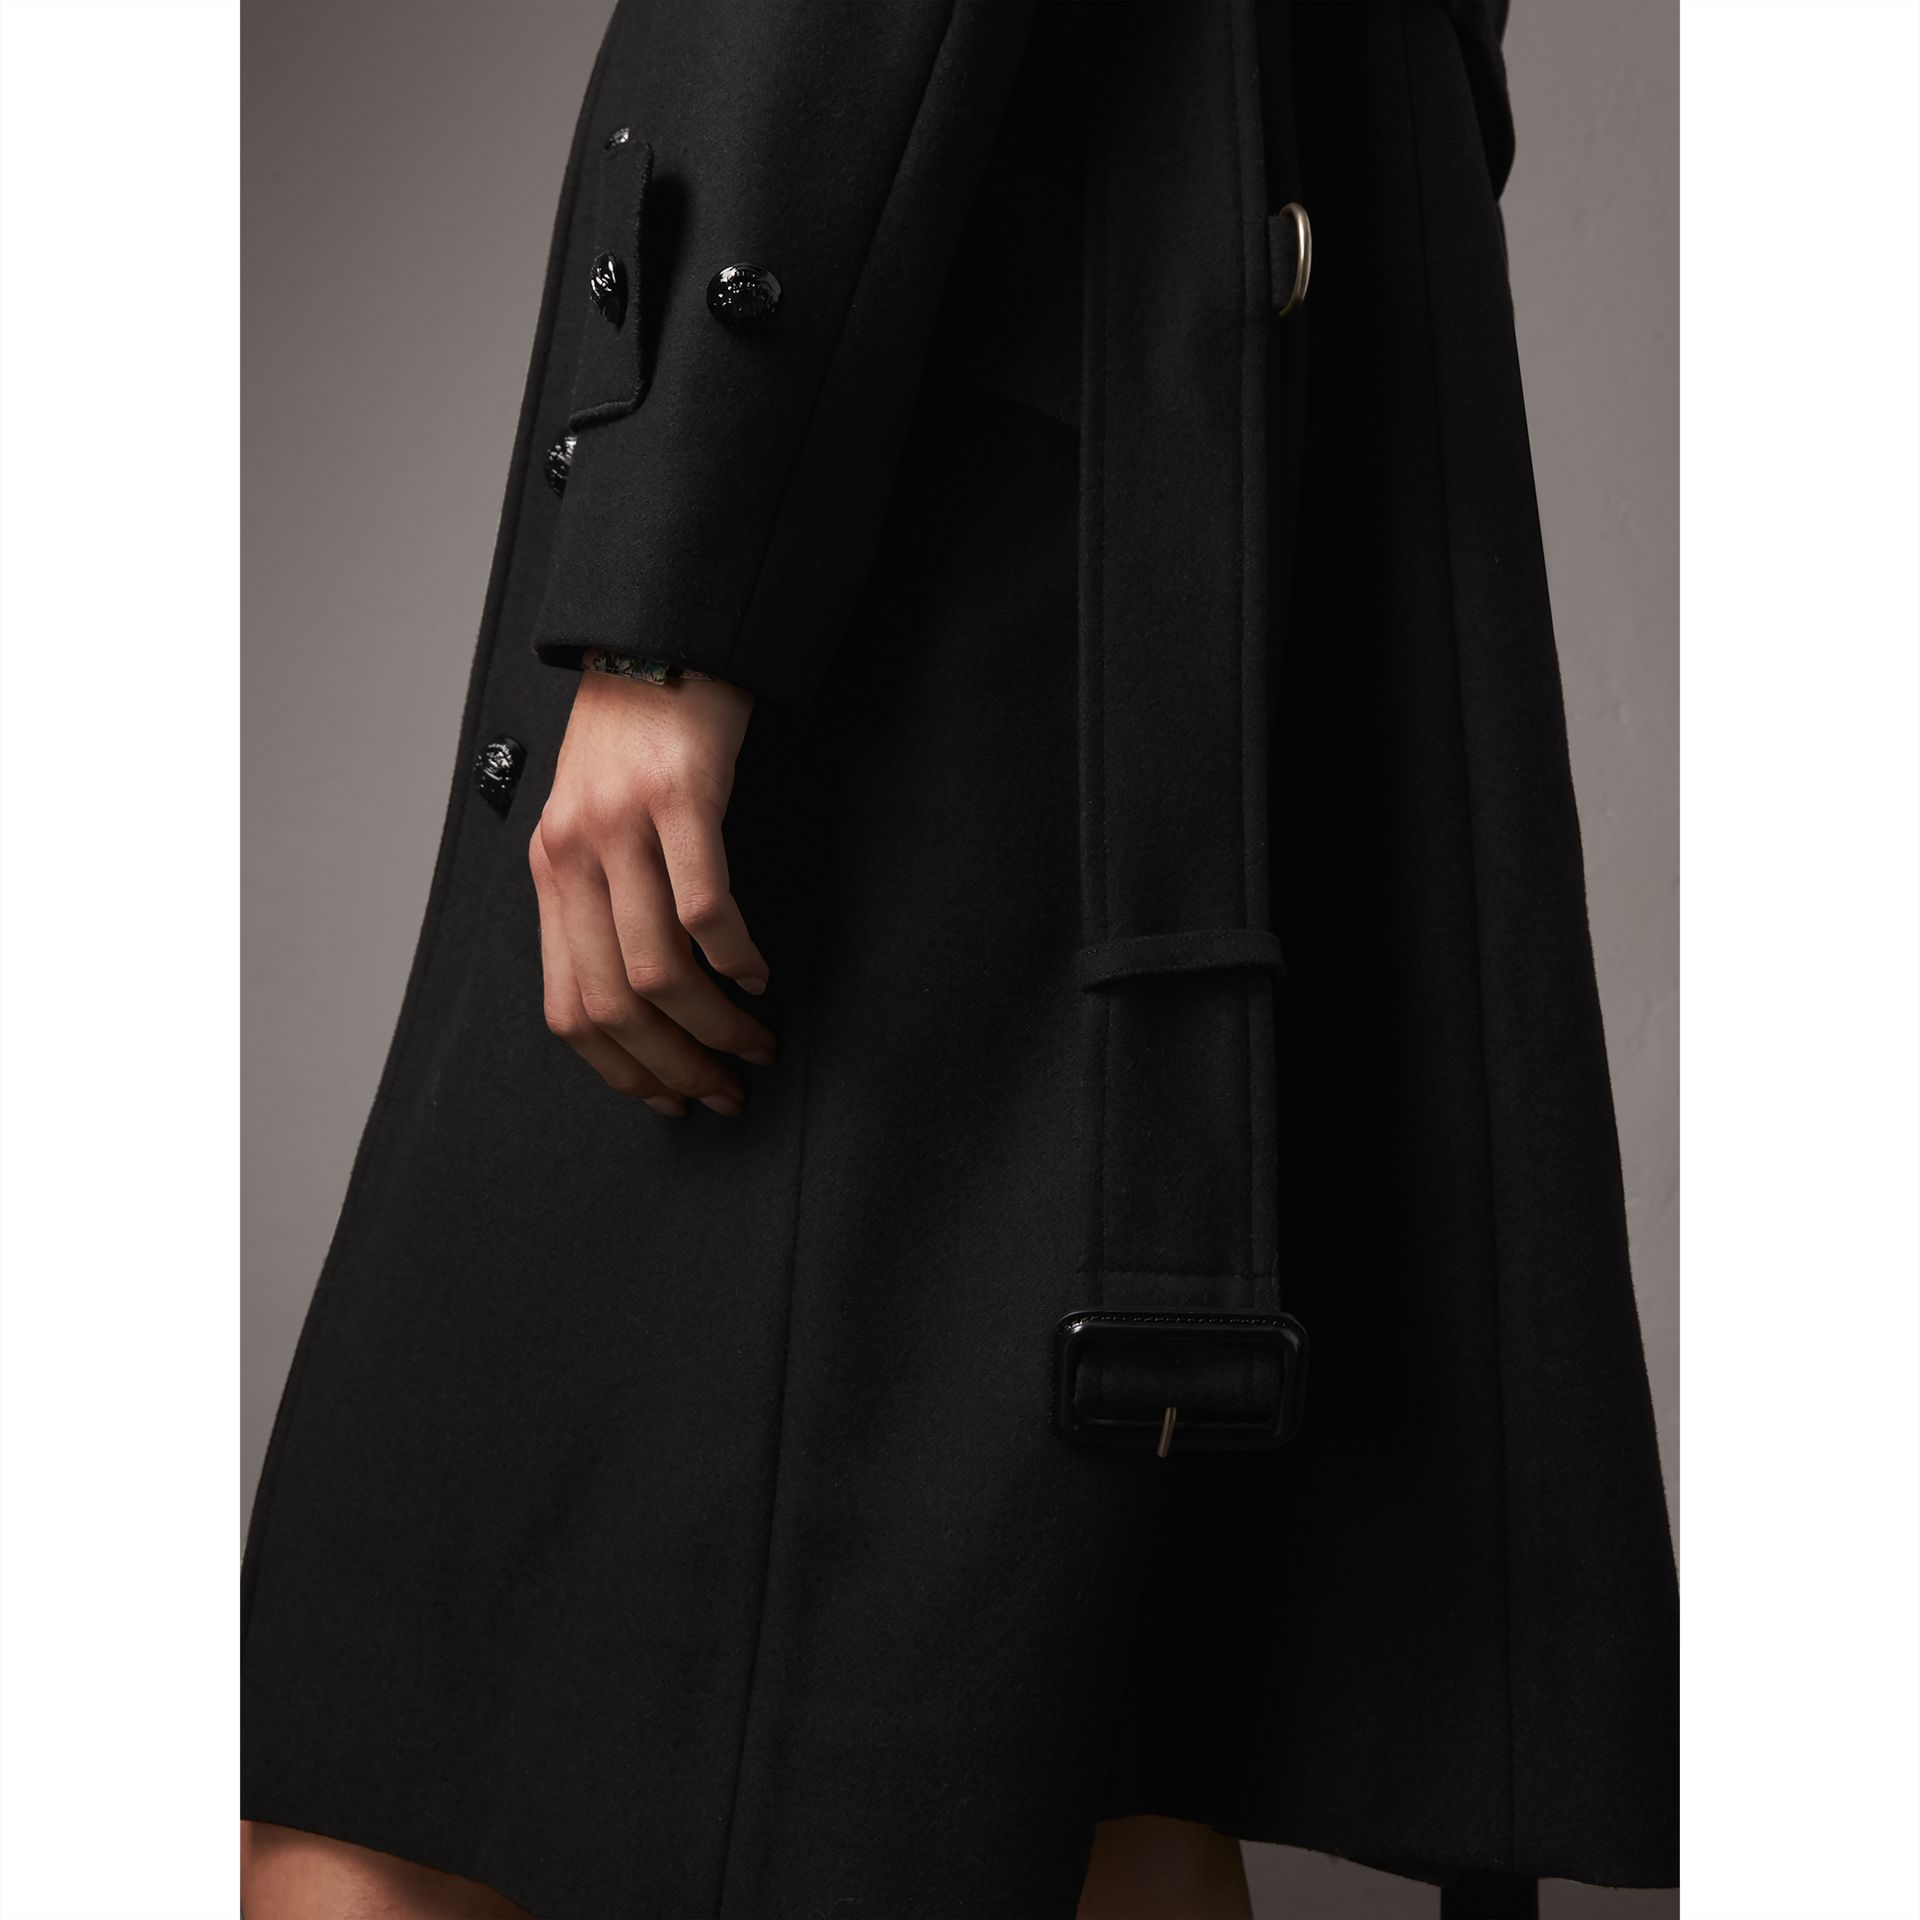 Hooded Wool Blend Coat with Detachable Fur Trim in Black - Women | Burberry United Kingdom - gallery image 2